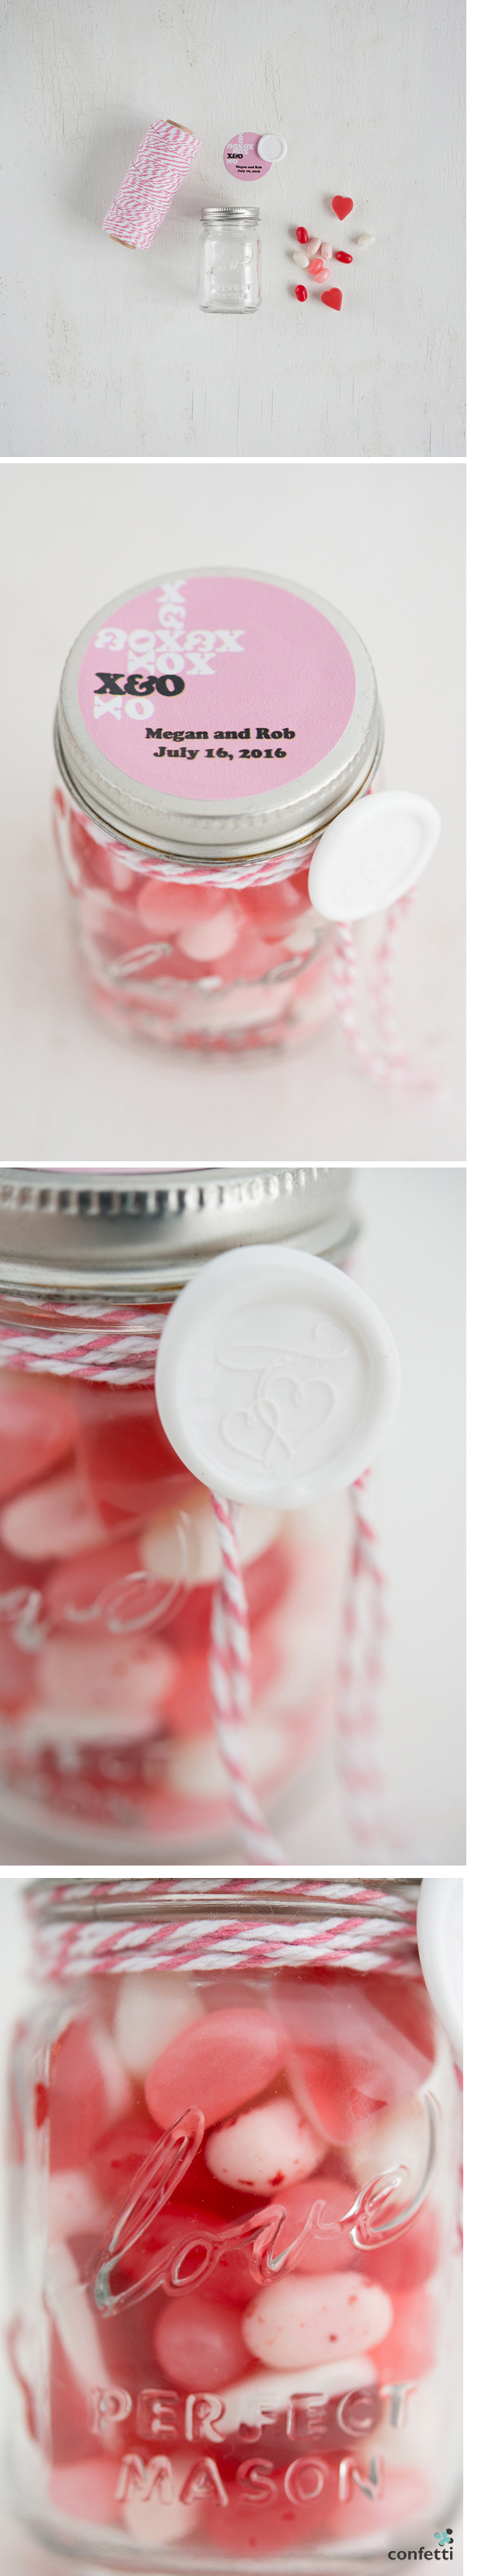 Sweet Heart Mason Jar Wedding Favour | DIY Wedding Favour Ideas | More Wedding Tips at Confetti.co.uk